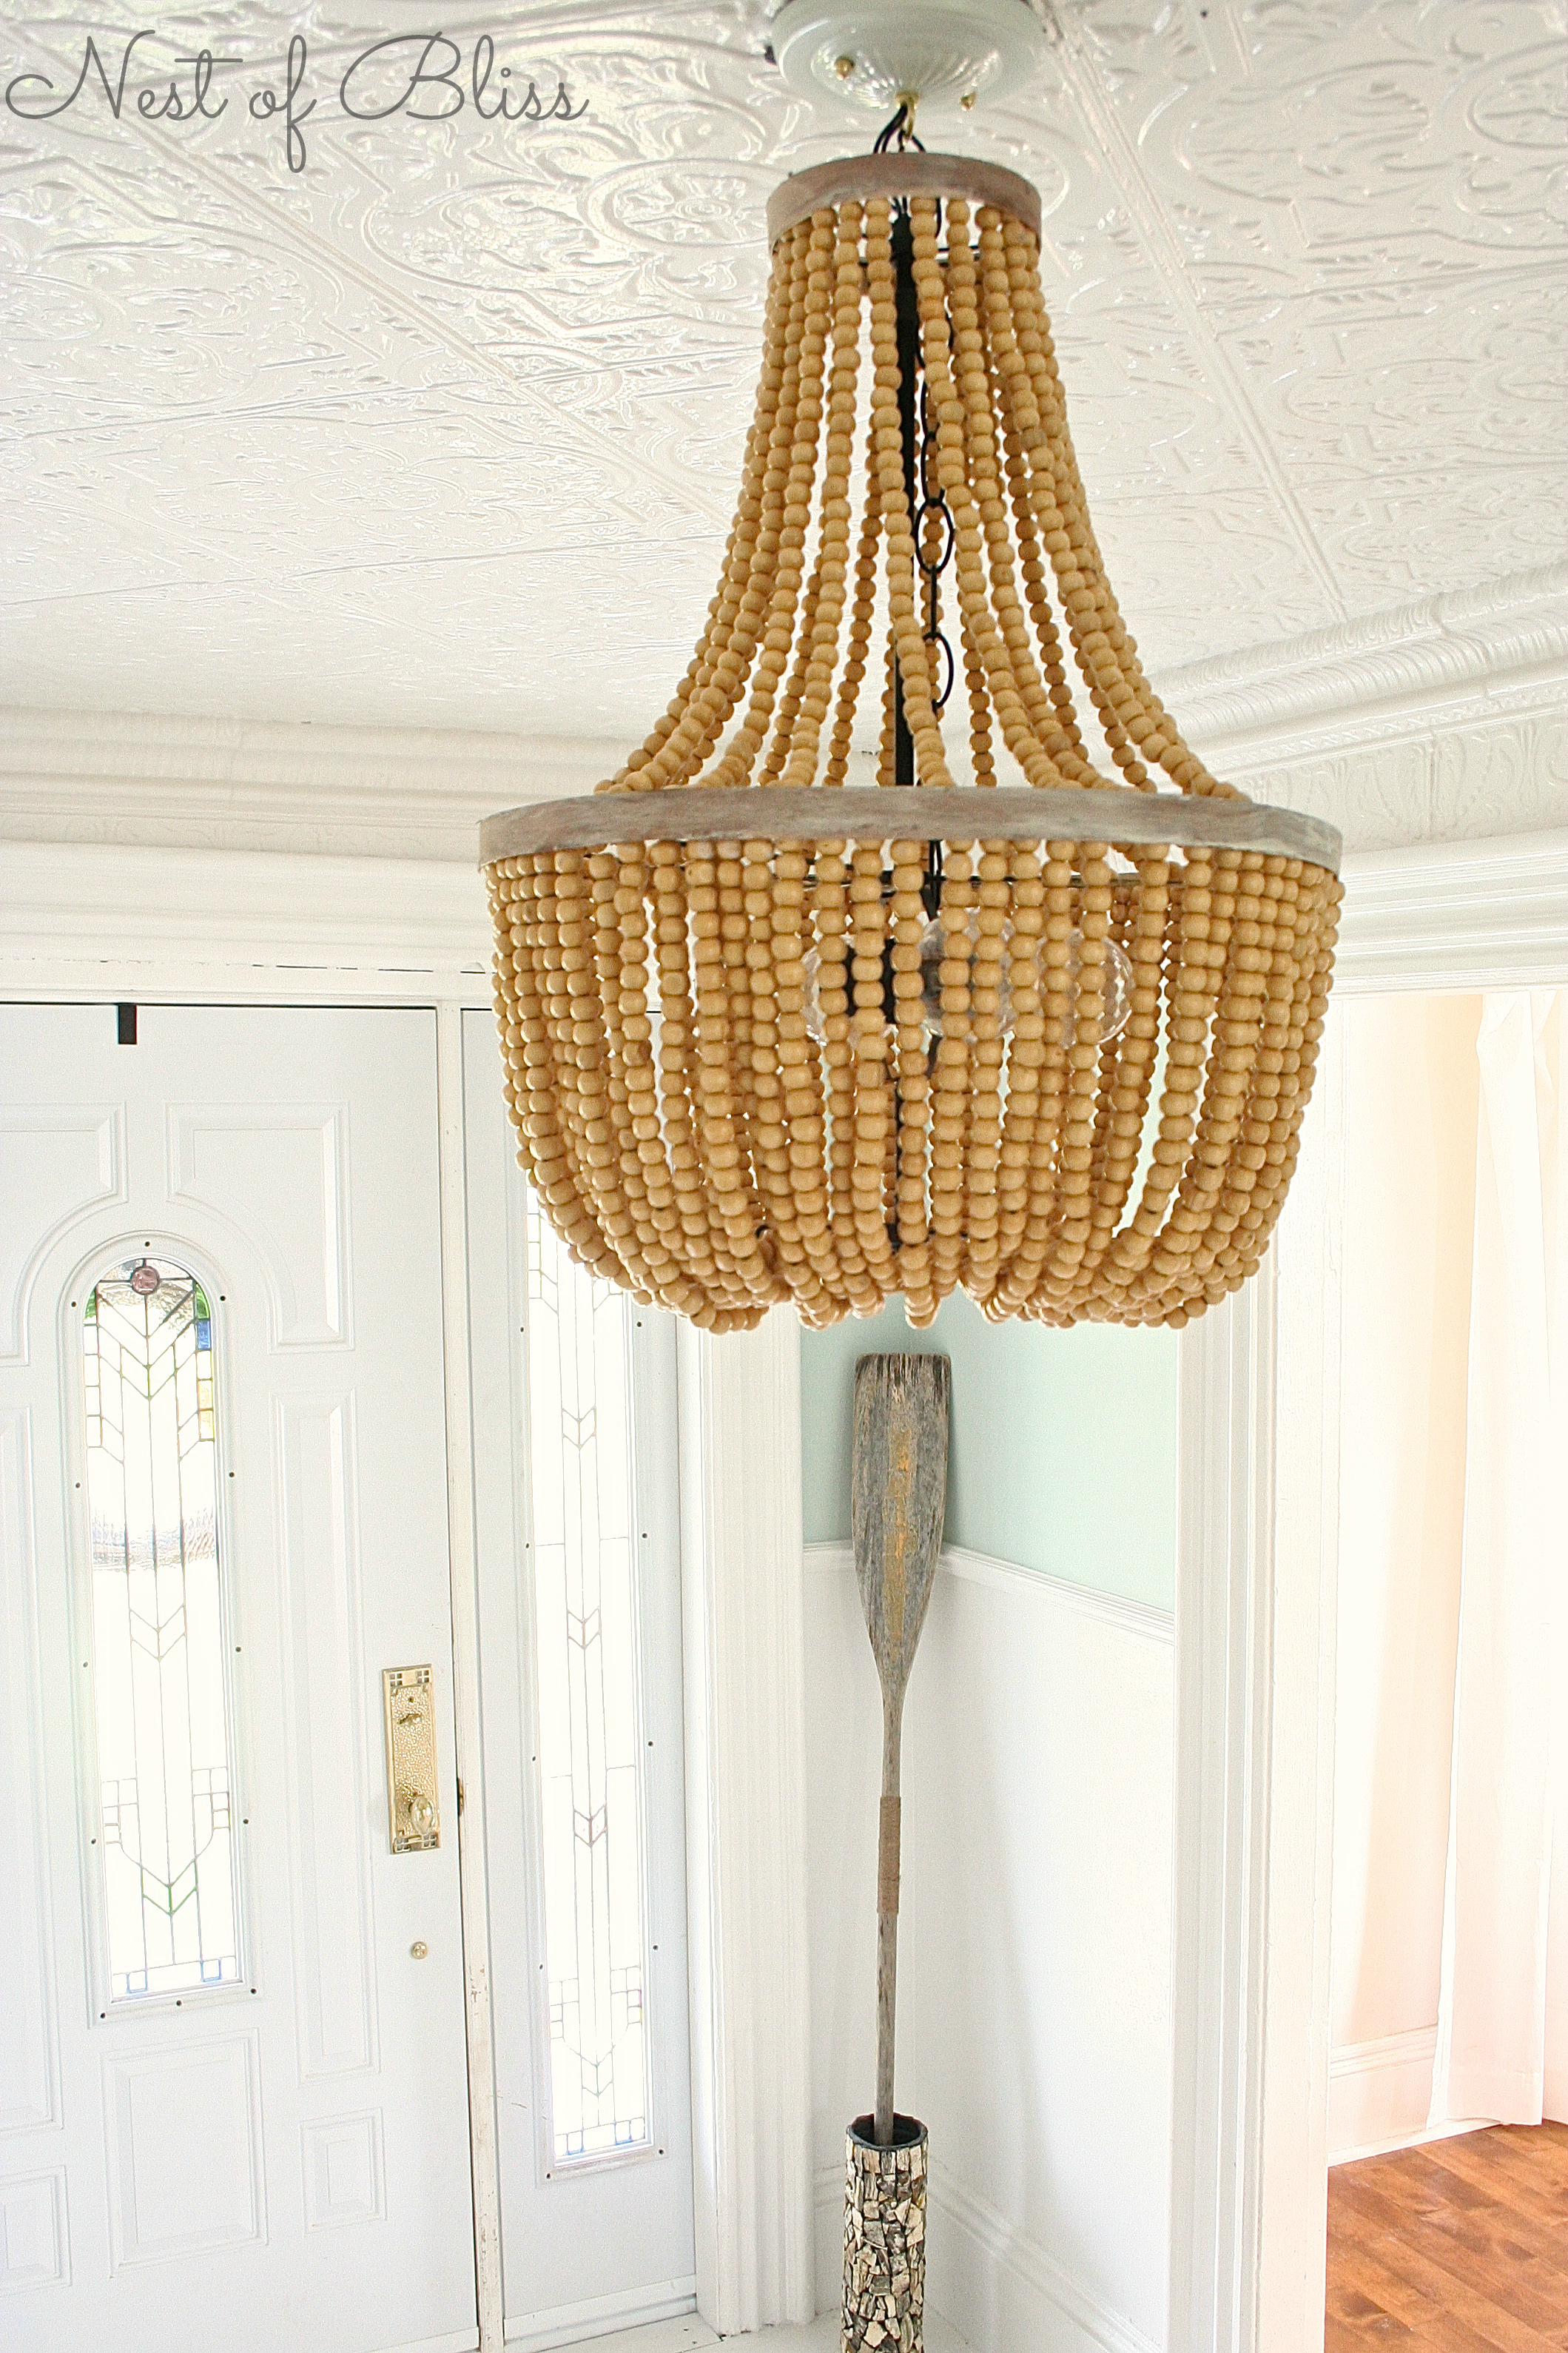 Breathtaking white wood bead chandelier with Ceiling Light Fixture Furnishing for living room Ideas